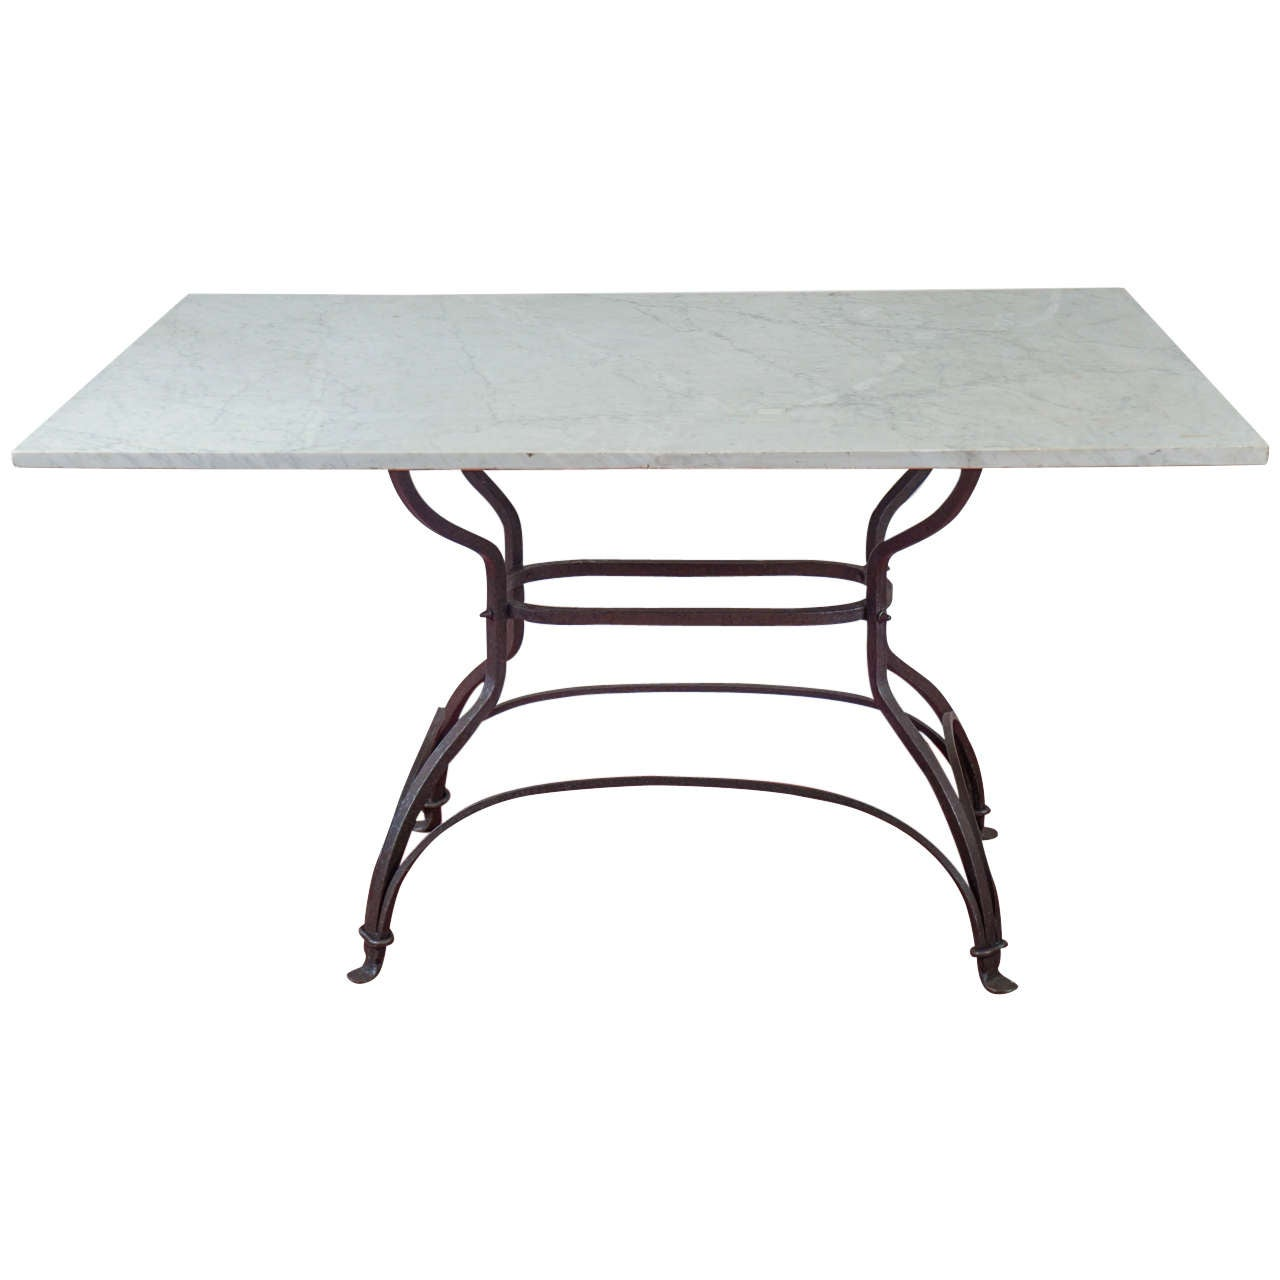 bistro table and chairs indoor metal chair legs for sale or outdoor garden at 1stdibs